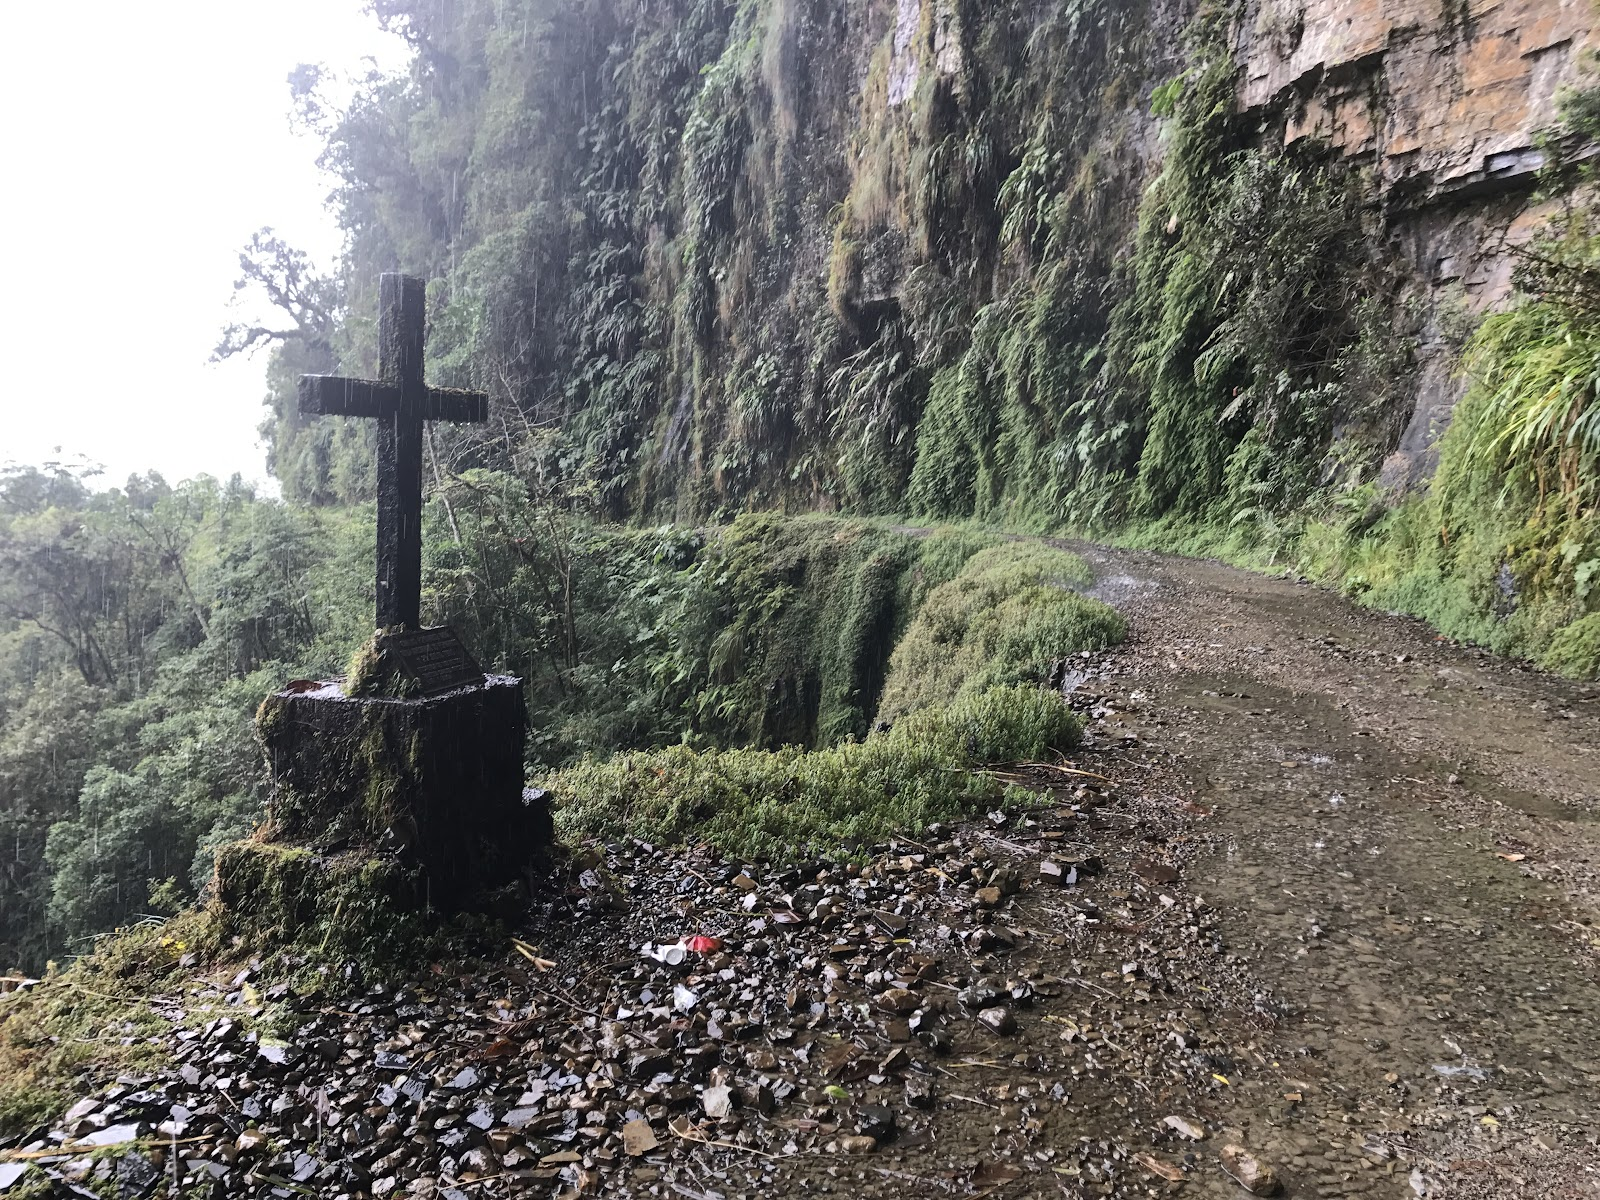 Main memorial cross on death road with narrow road